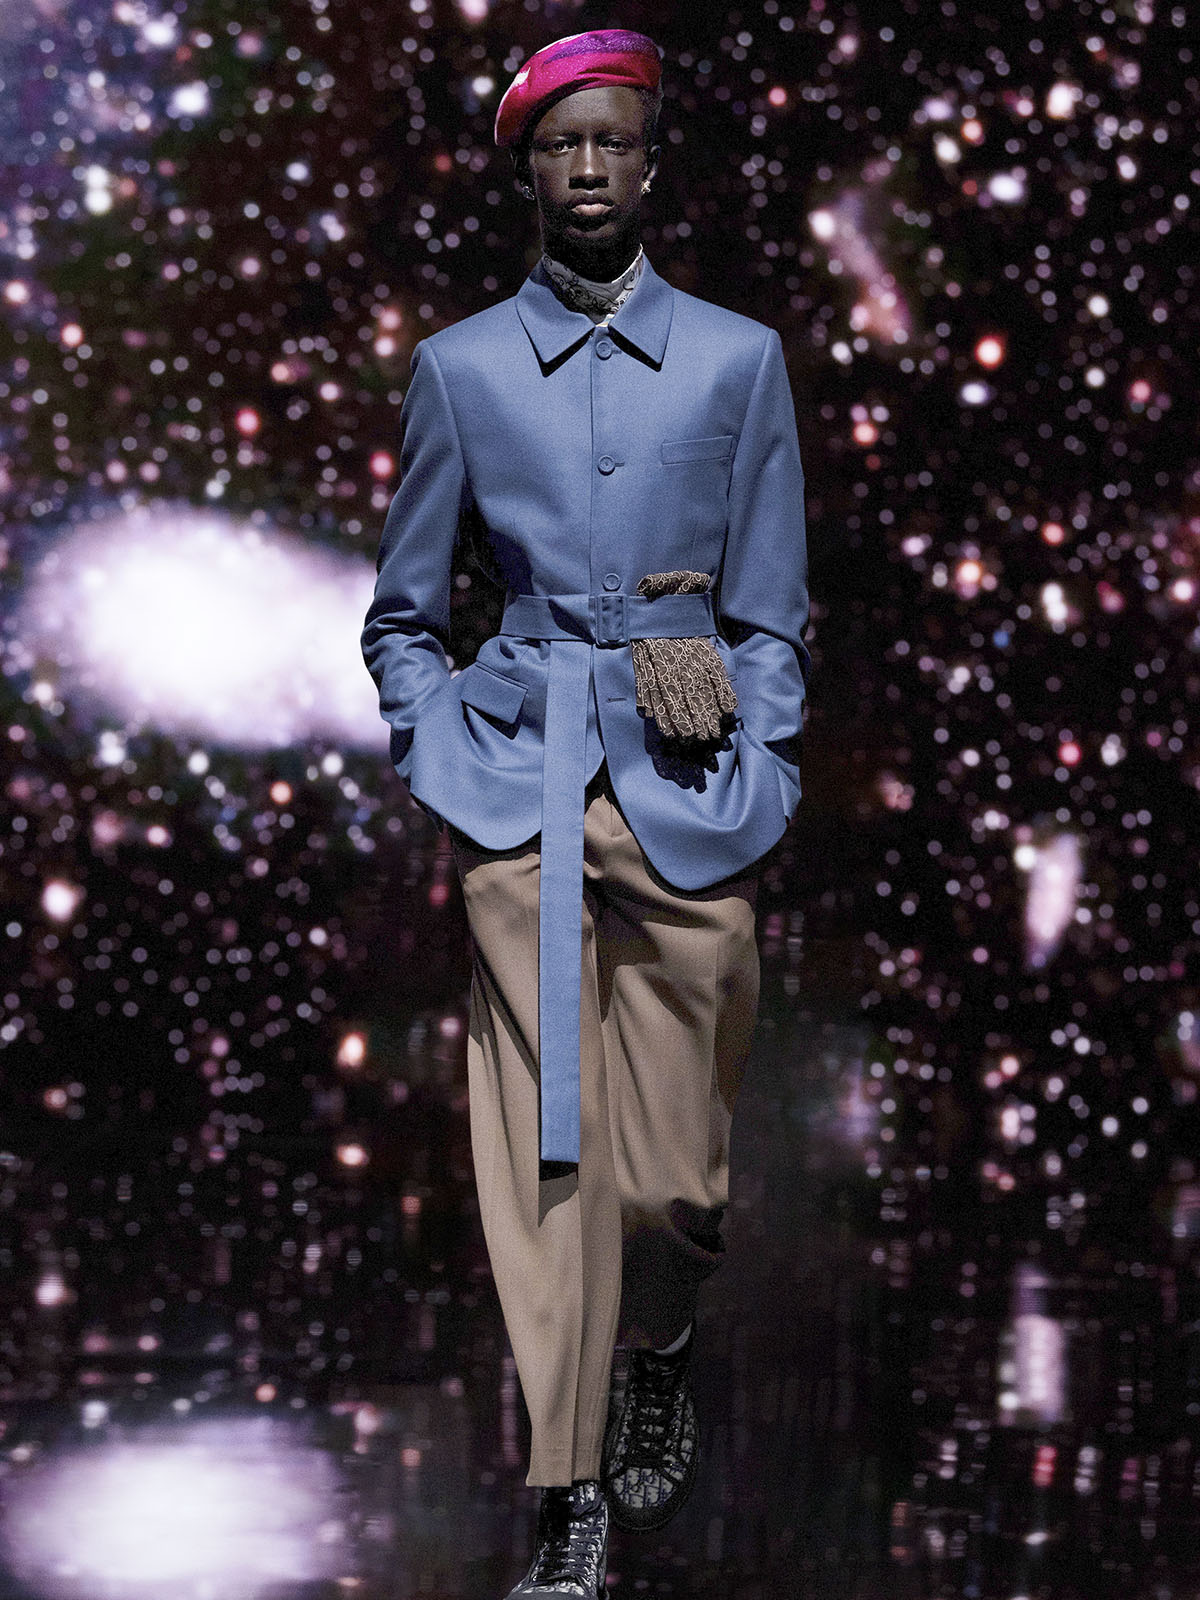 Dior's latest men's collection is a cosmic collaboration with artist Kenny Scharf